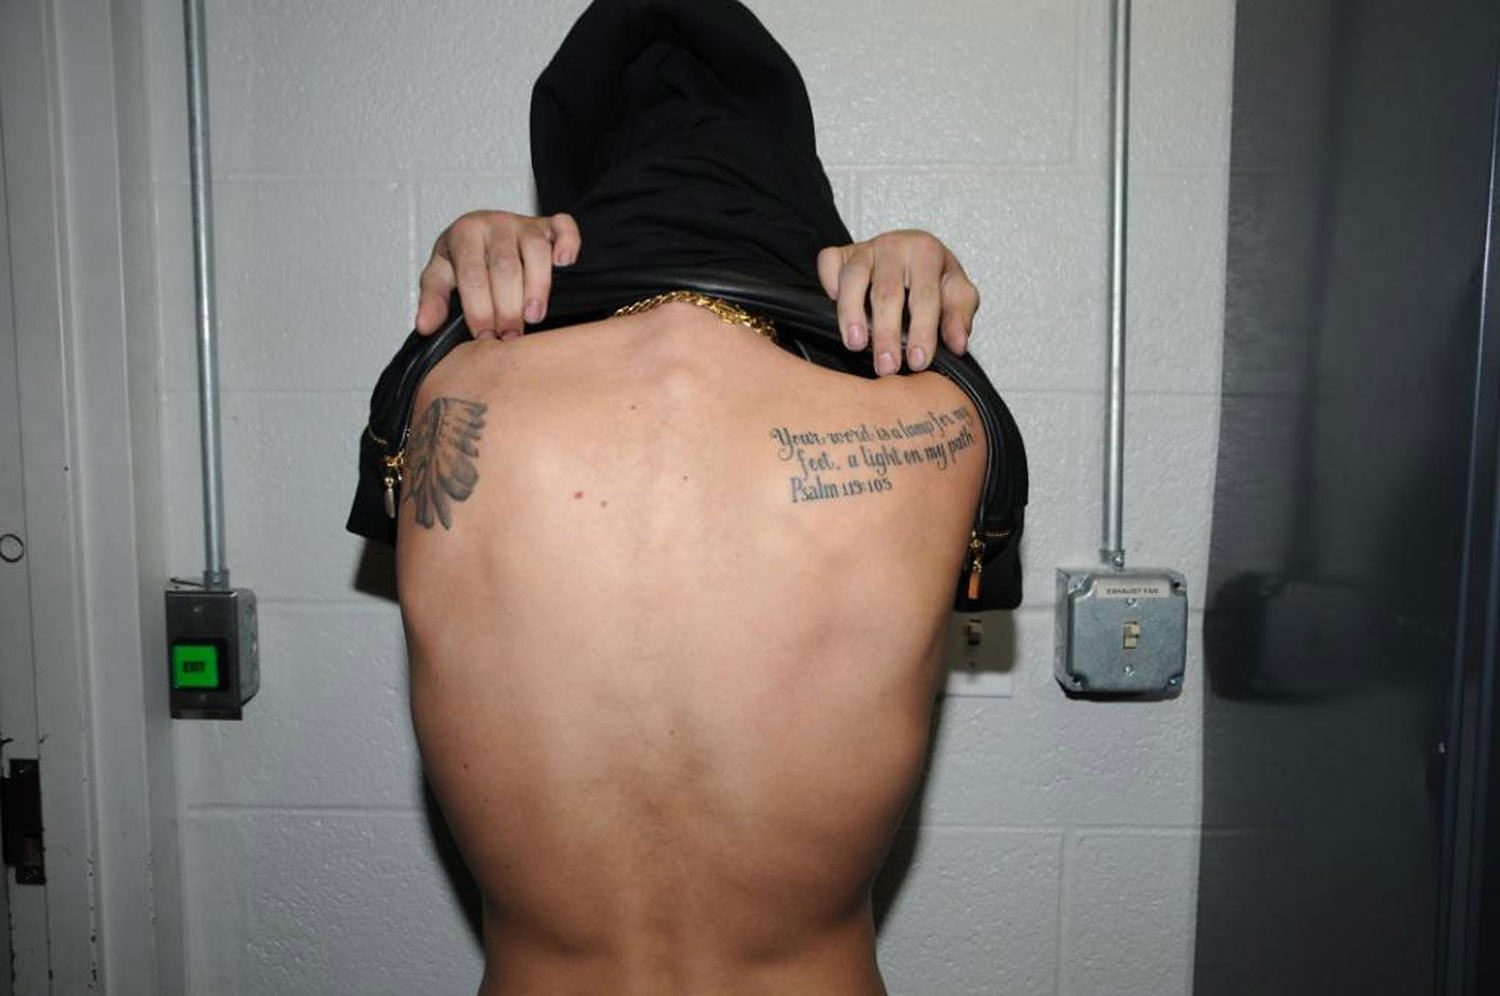 In this handout photo provided by the Miami Beach Police Department and released on March 4, 2014, singer Justin Bieber displays his tattoos for police documentation while in custody on January 23, 2014 in Miami Beach, Florida.